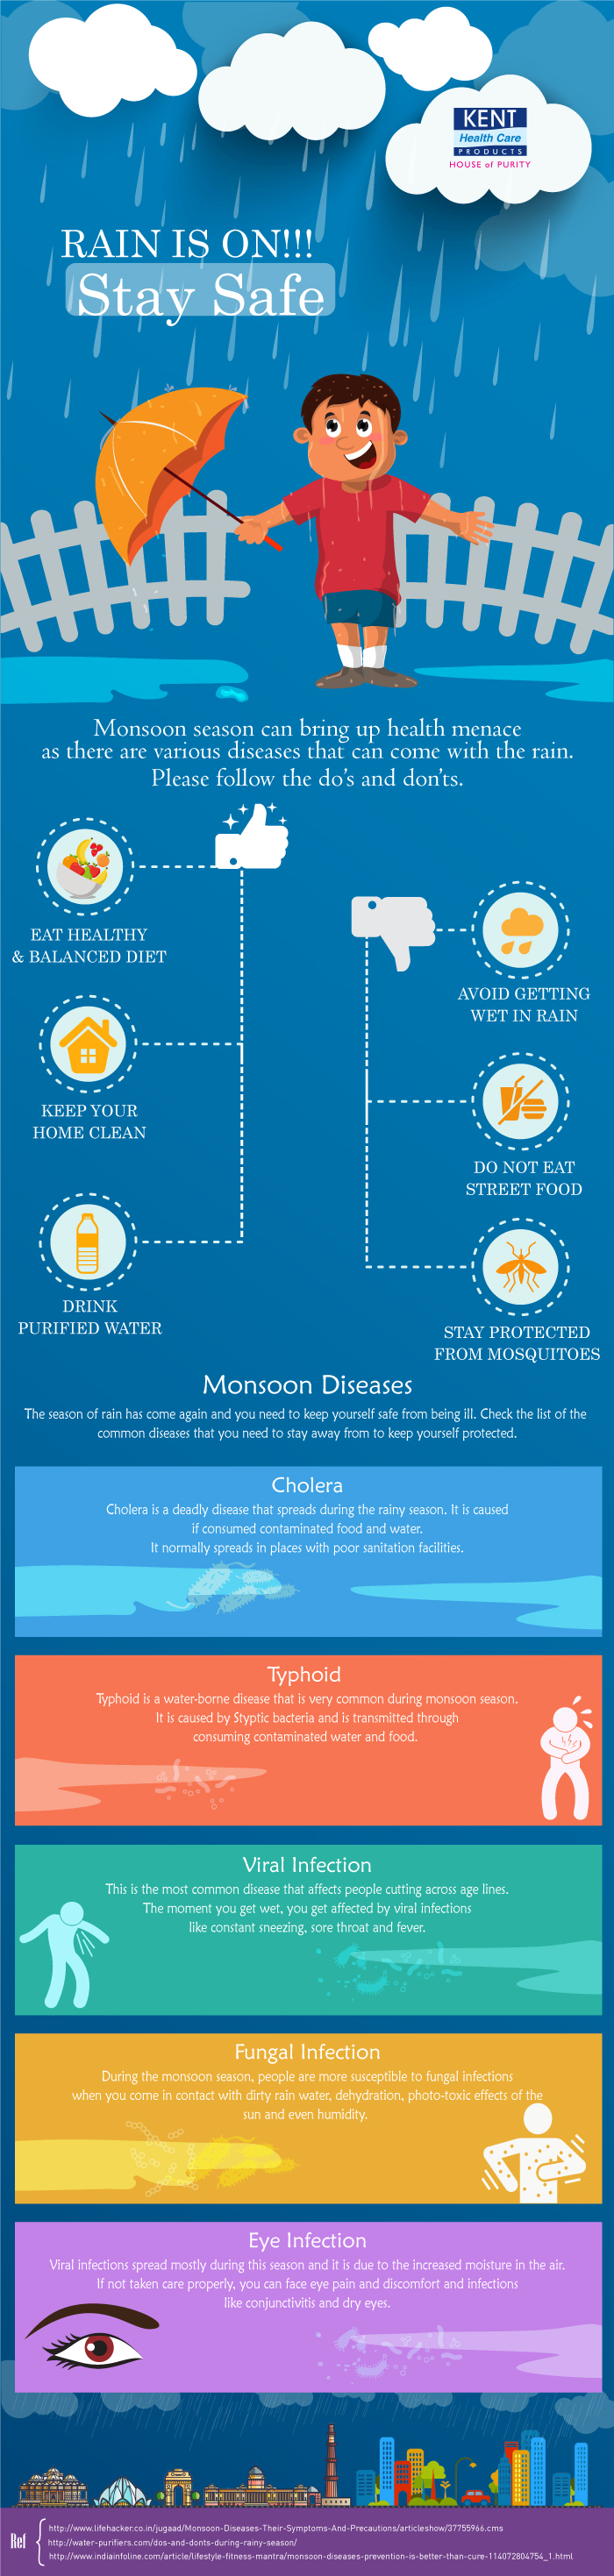 Common Health Problems During Monsoon and Ways to Stay Safe #infographic